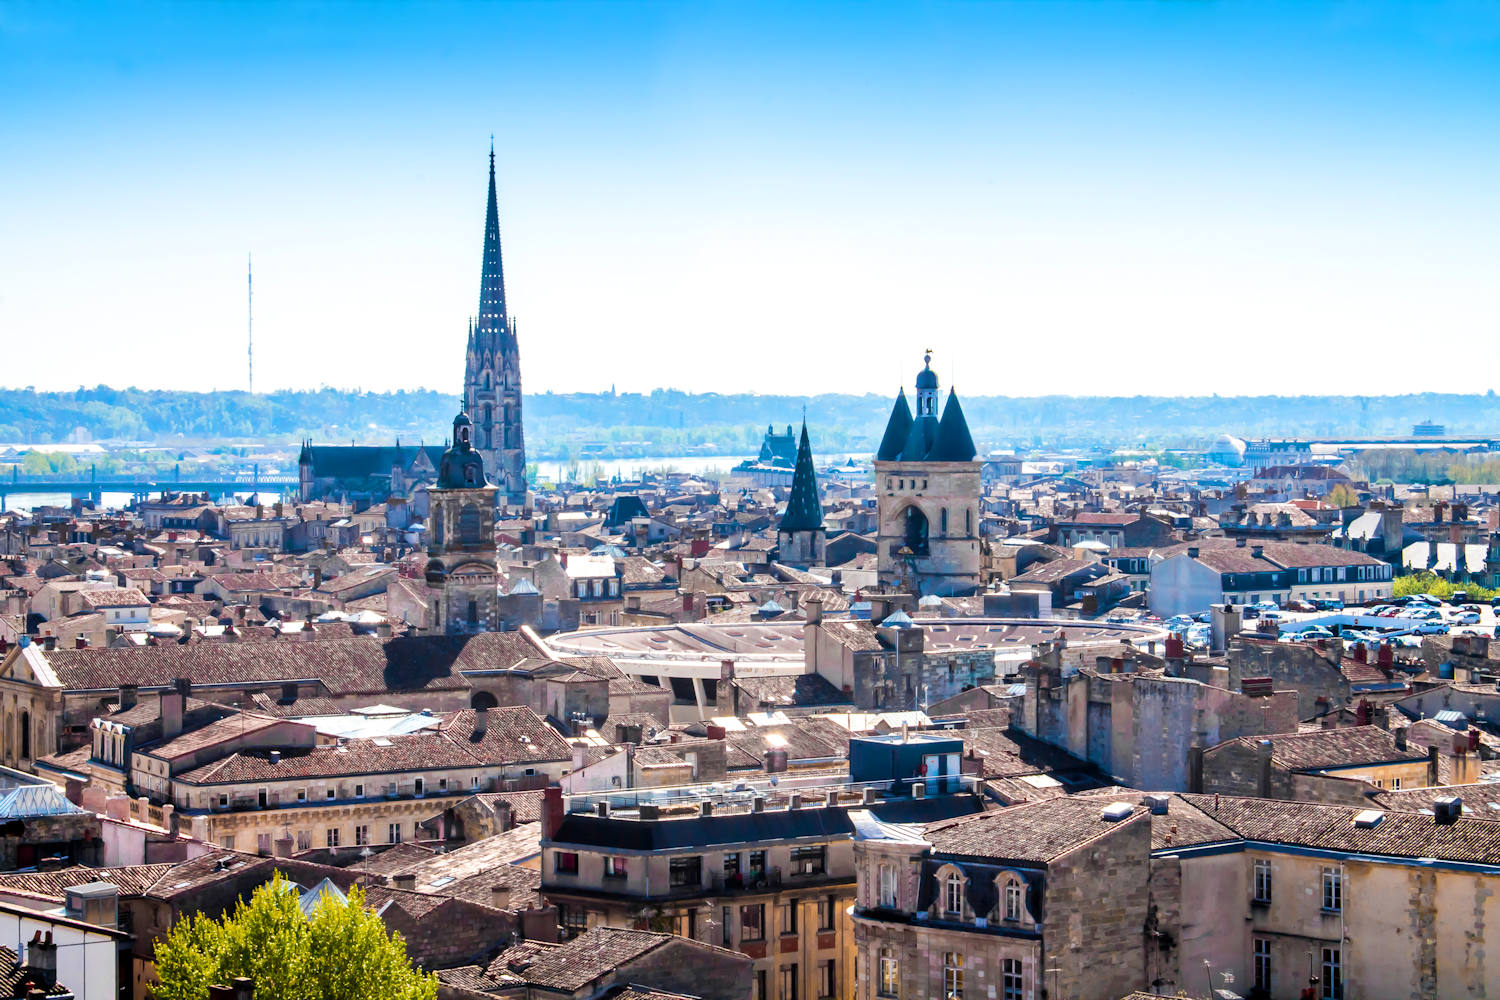 Panoramic view of Bordeaux